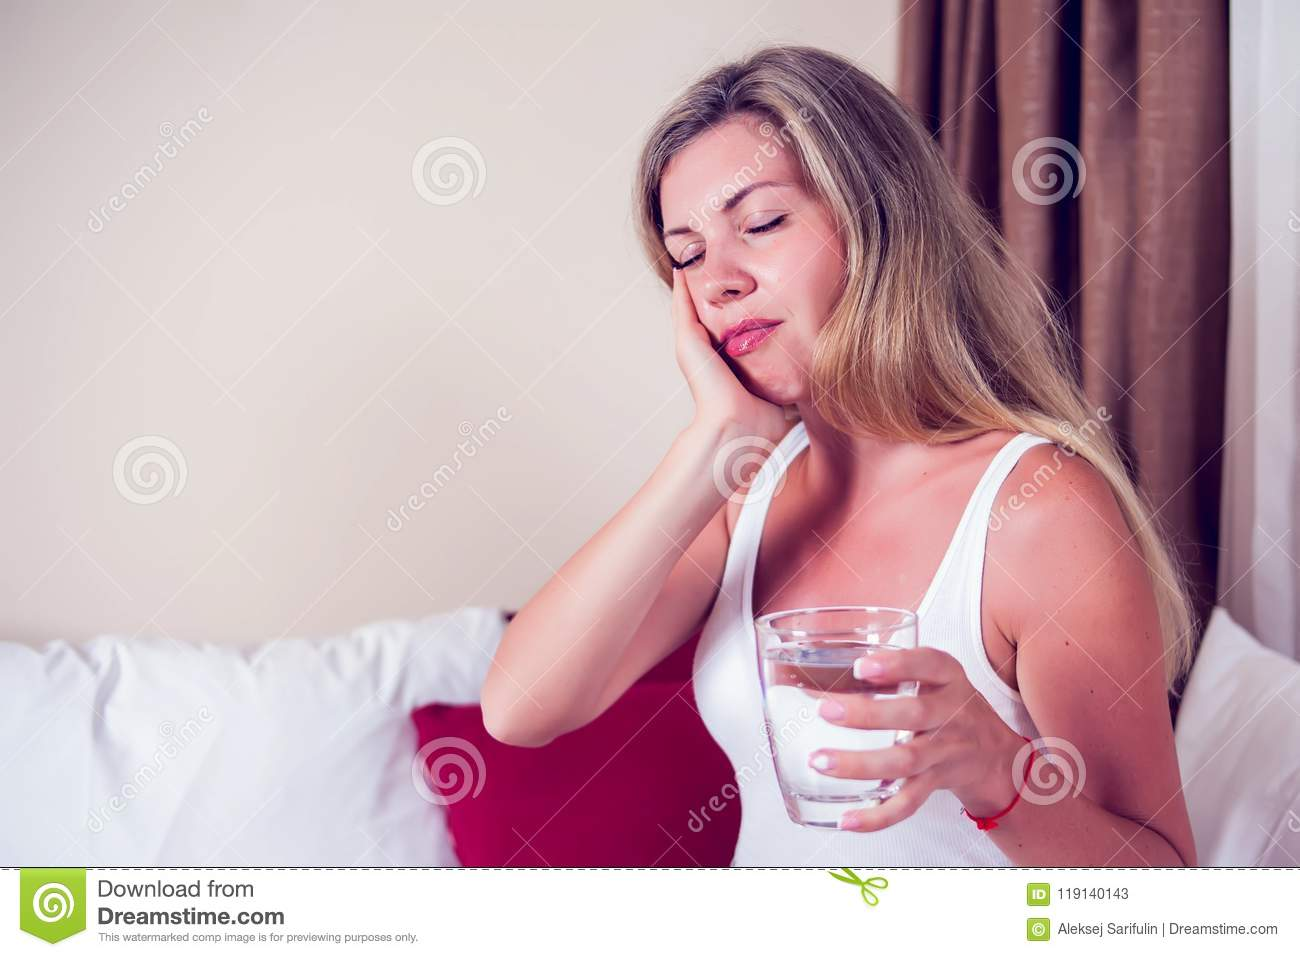 Teeth Problem. Woman Feeling Tooth Pain. Attractive Female Feeling Painful Toothache. Dental Health And Care Concept. High